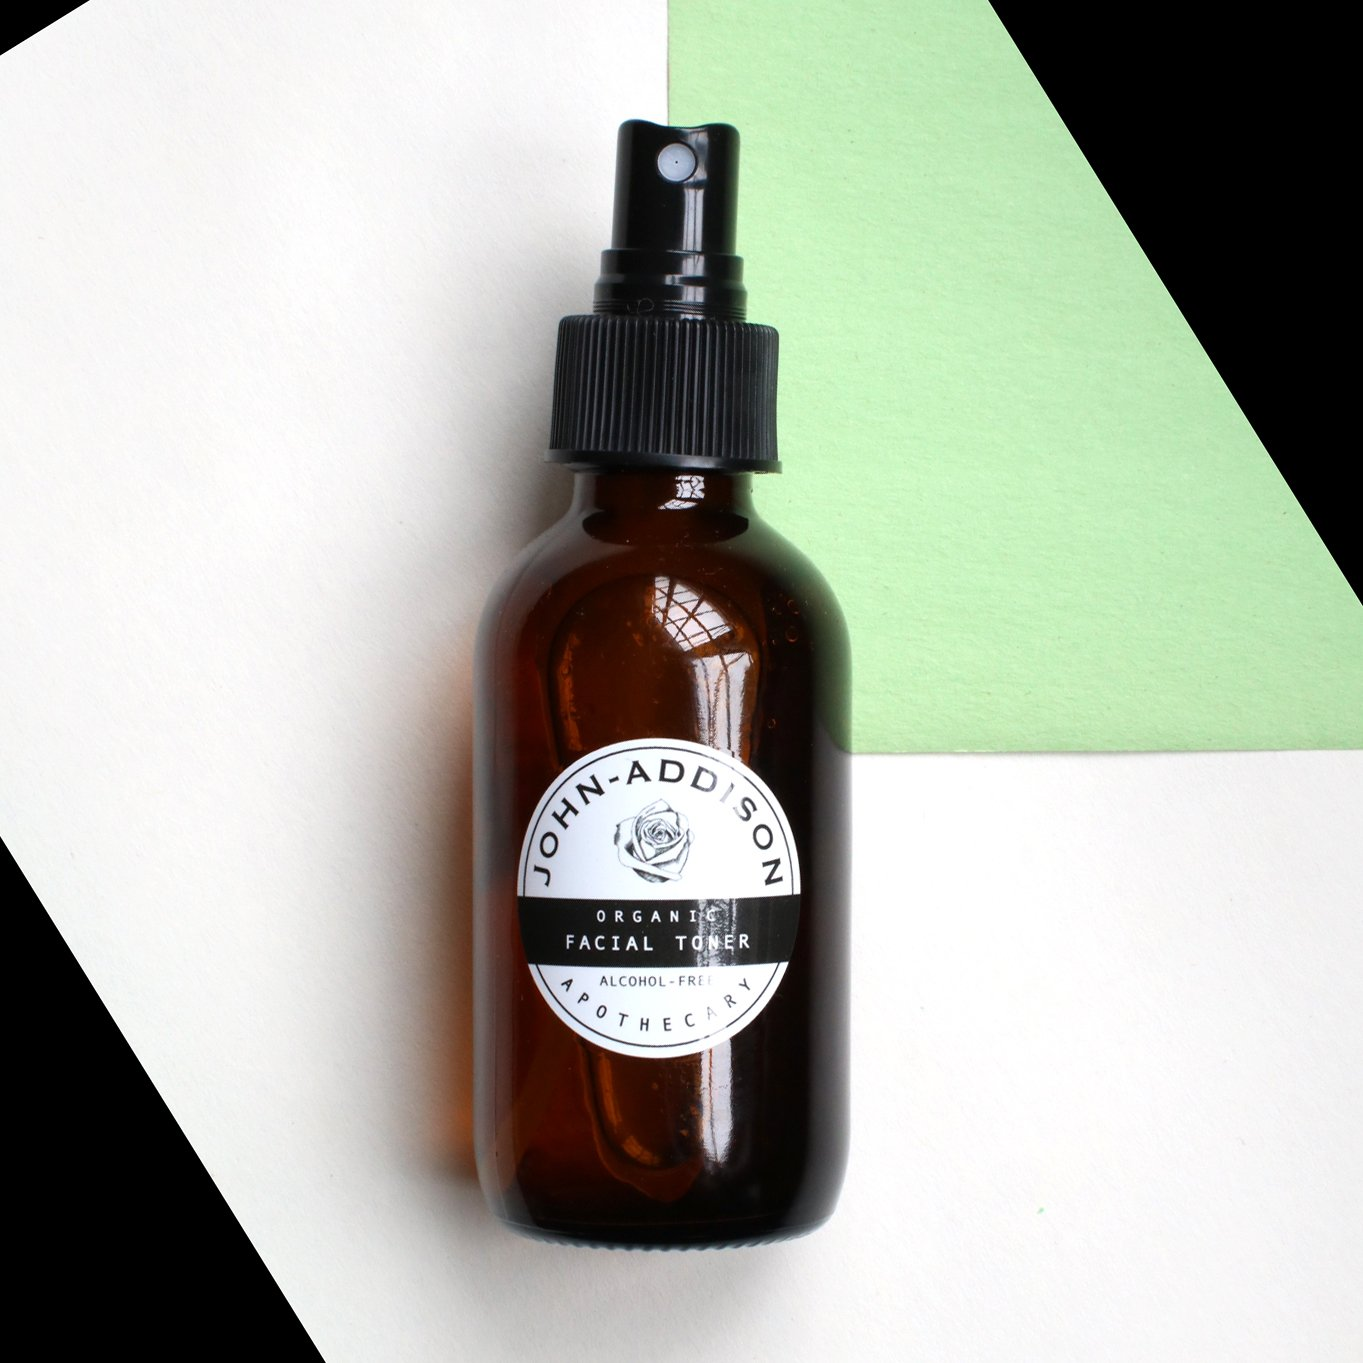 ORGANIC FACIAL TONER by JOHN ADDISON - Amber Glass Bottle With Spray Top - 100ml